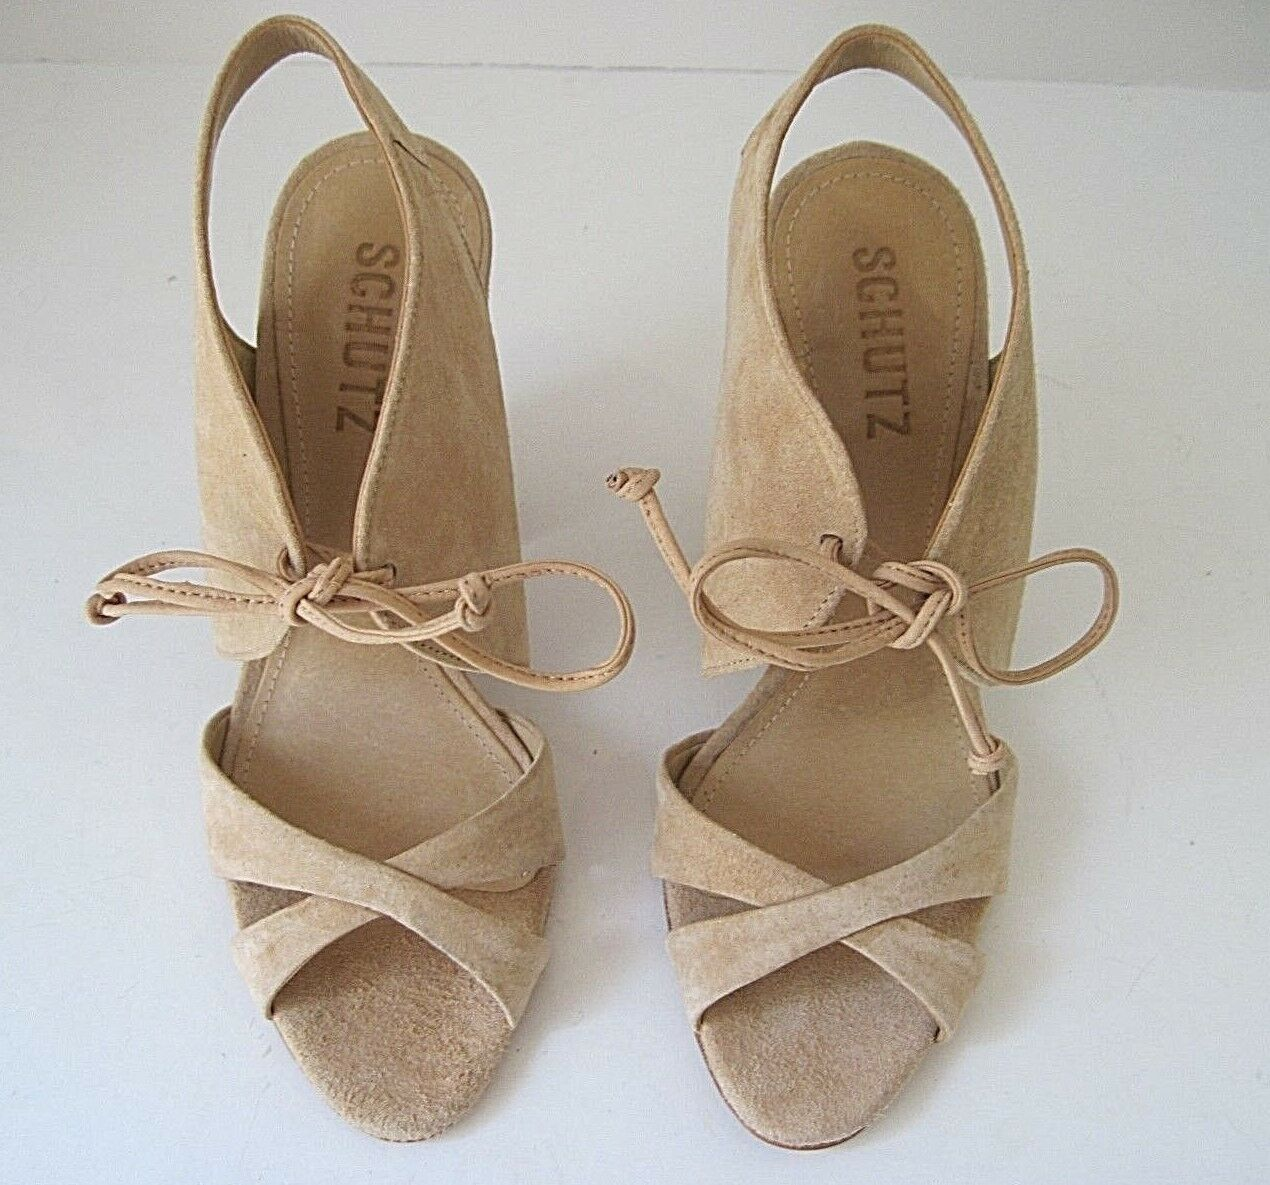 Schutz Beige Single Suede Lace Up High Block Heel Single Beige Sole Sandal Größe 6.5B, NEW bf94e6